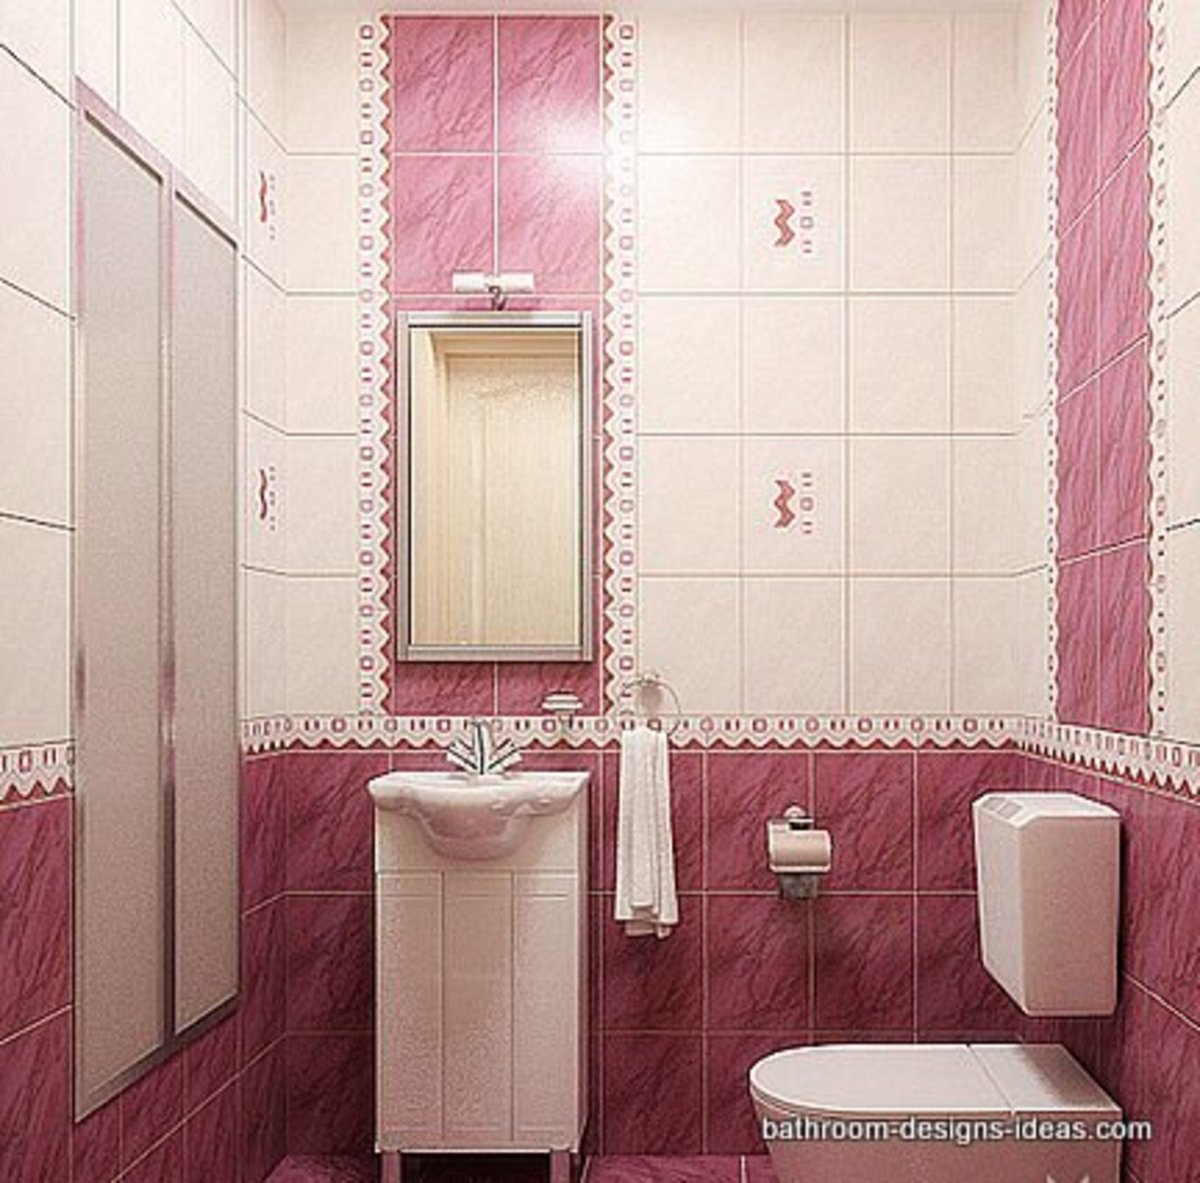 pink bathroom with white fixtures and cabinets